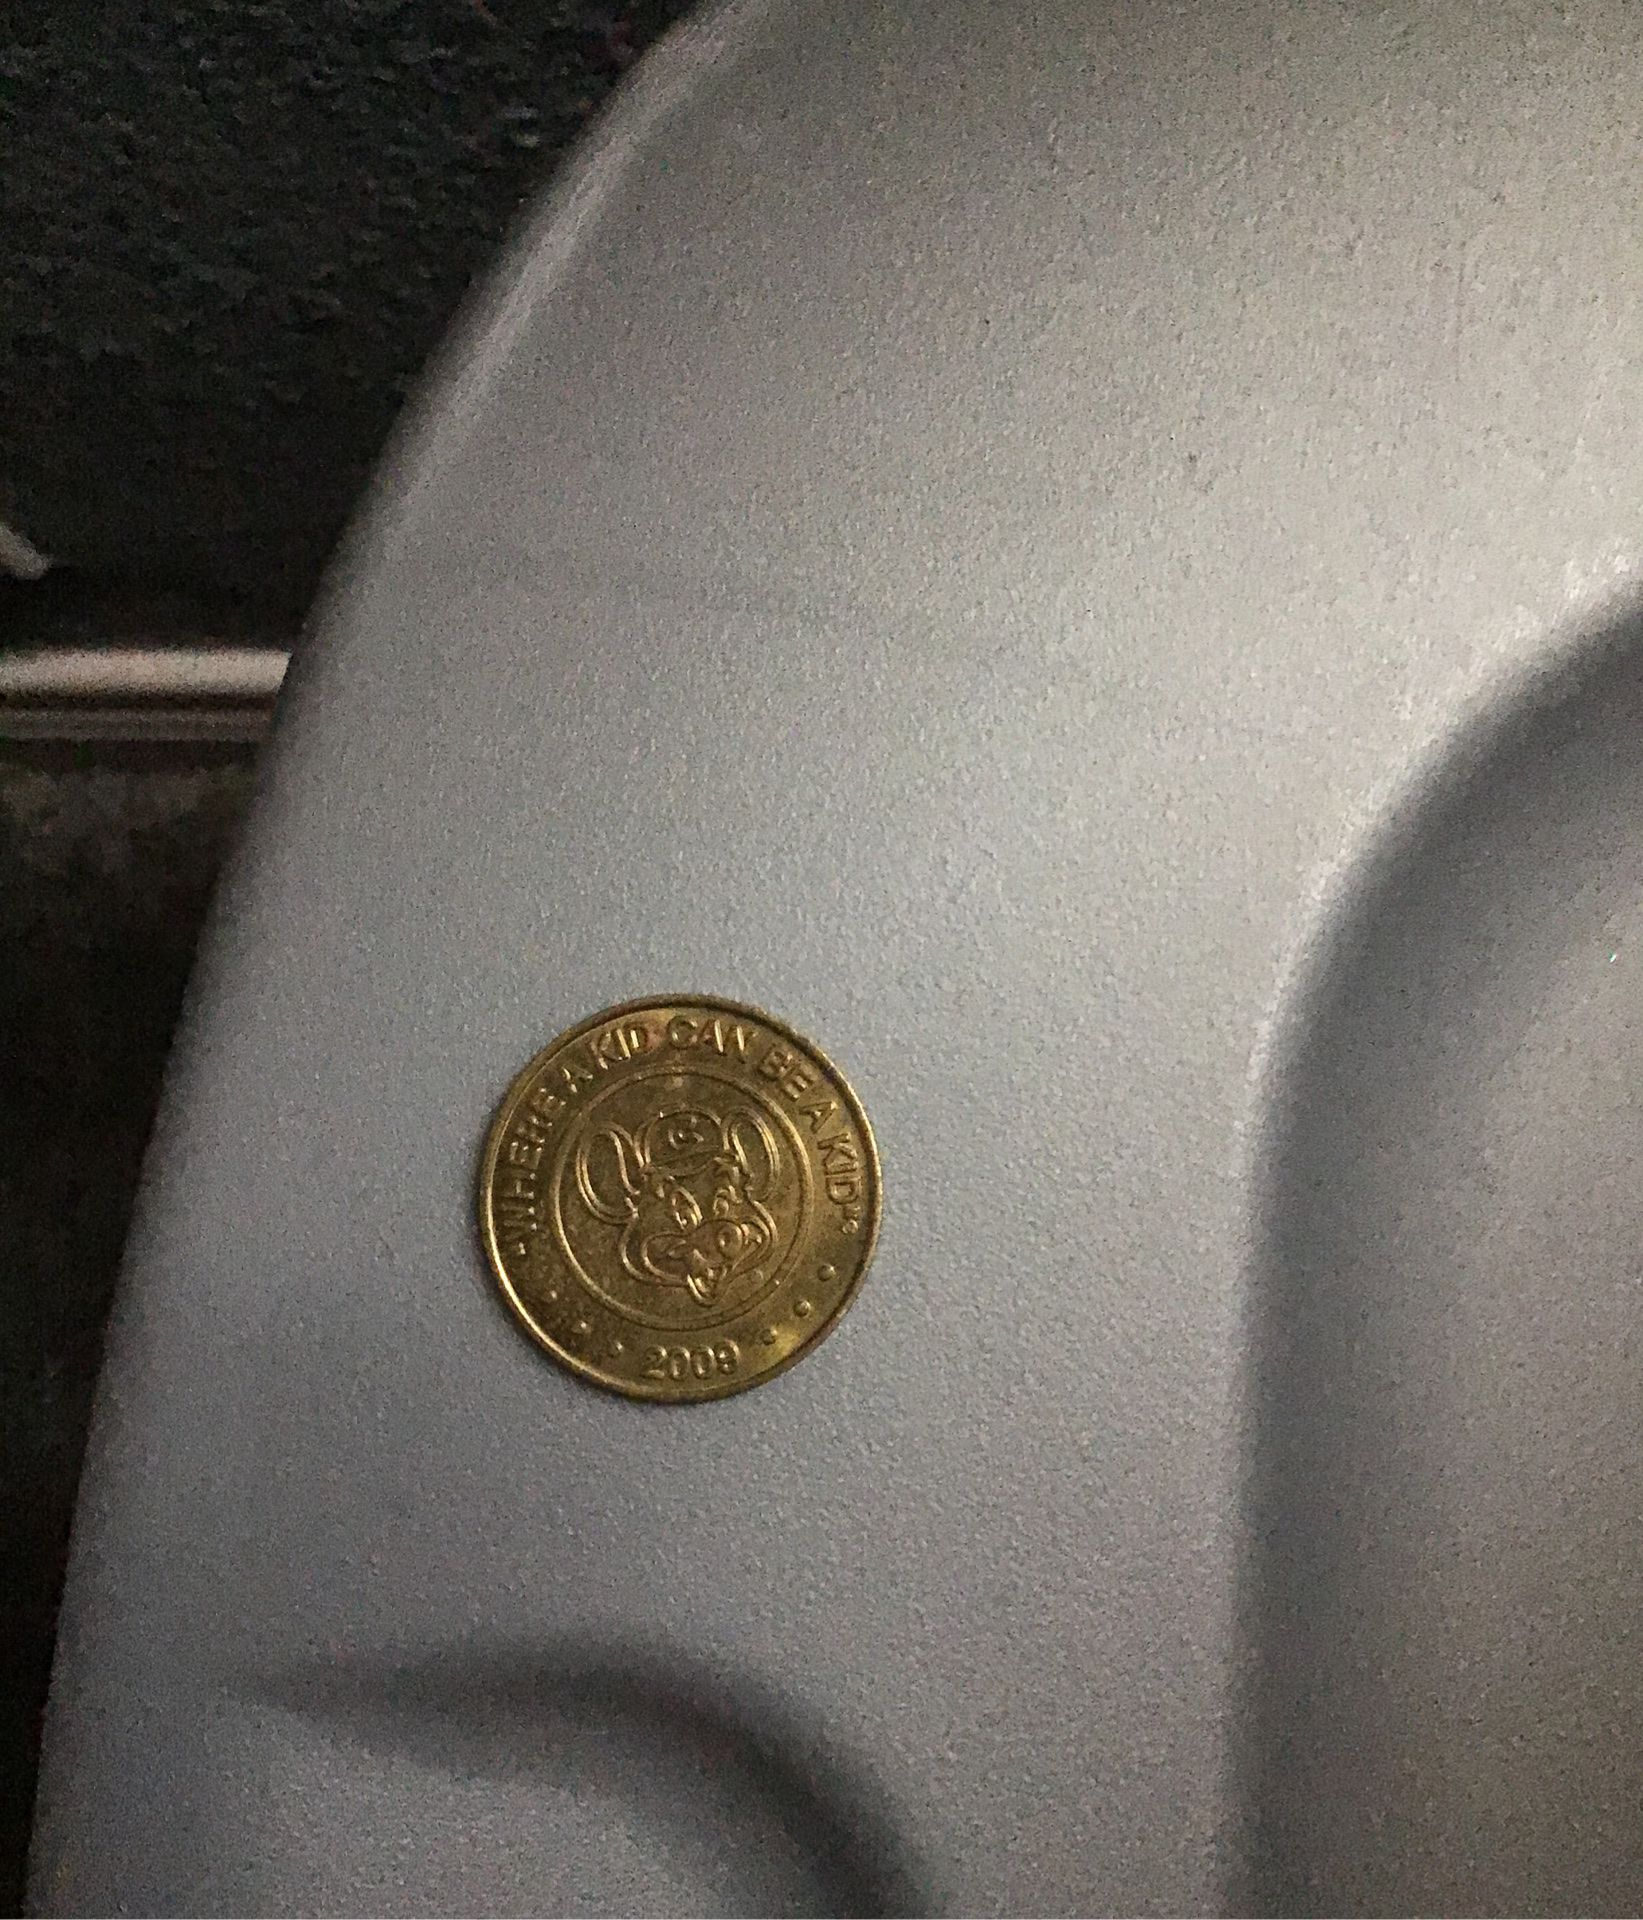 Chuck E. Cheese coin from 2009 they do not make these anymore